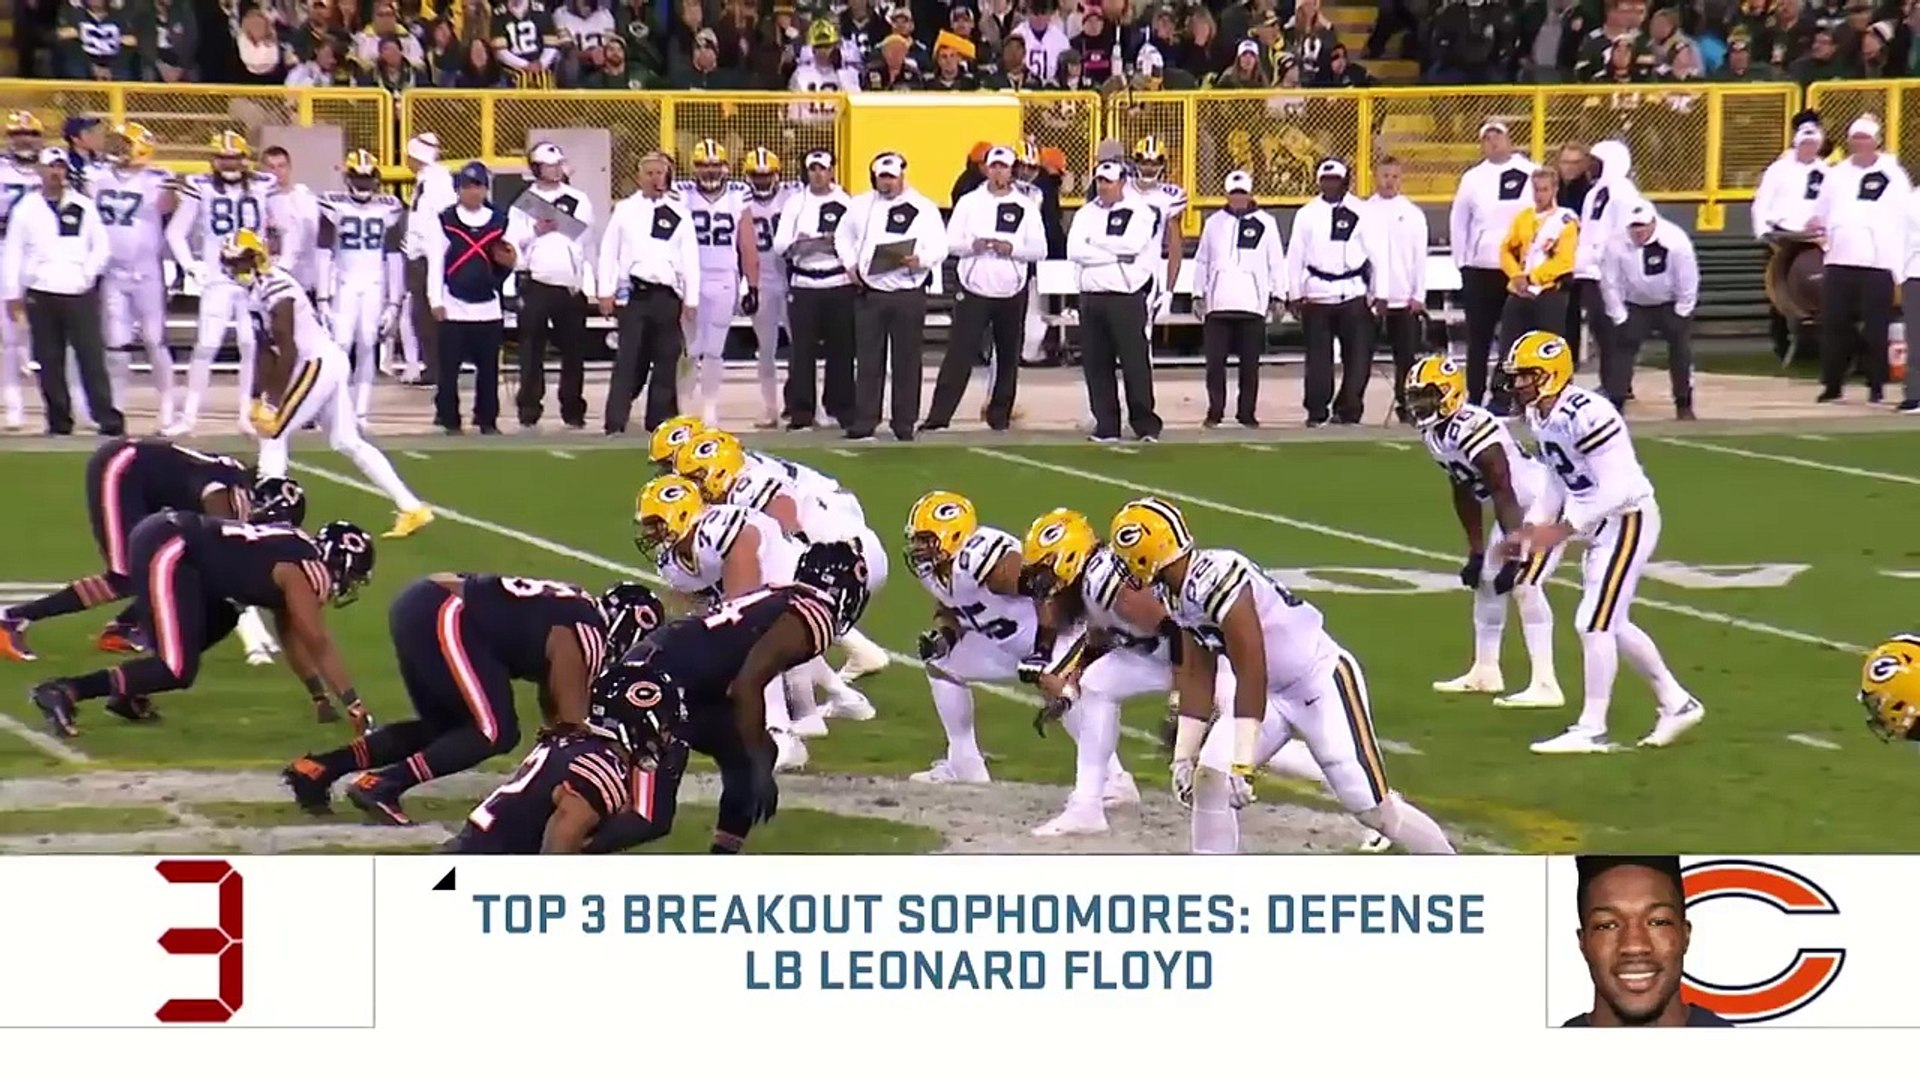 Top 3 Second-Year Defensive Players that Will Break Out in 2017   Move the Sticks   NFL